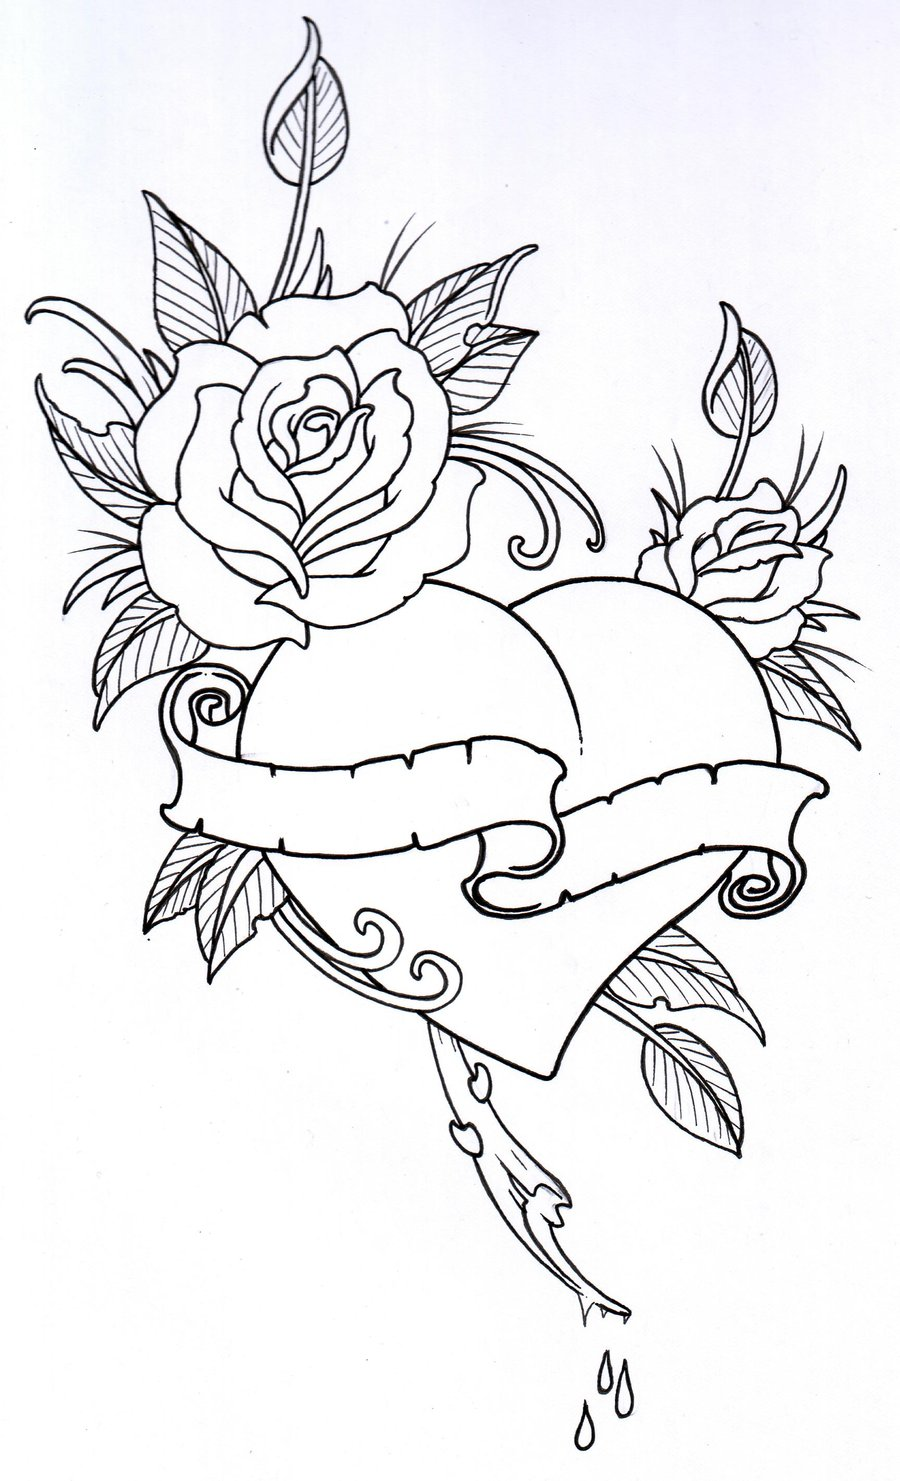 This is an image of Universal Tattoo Coloring Page